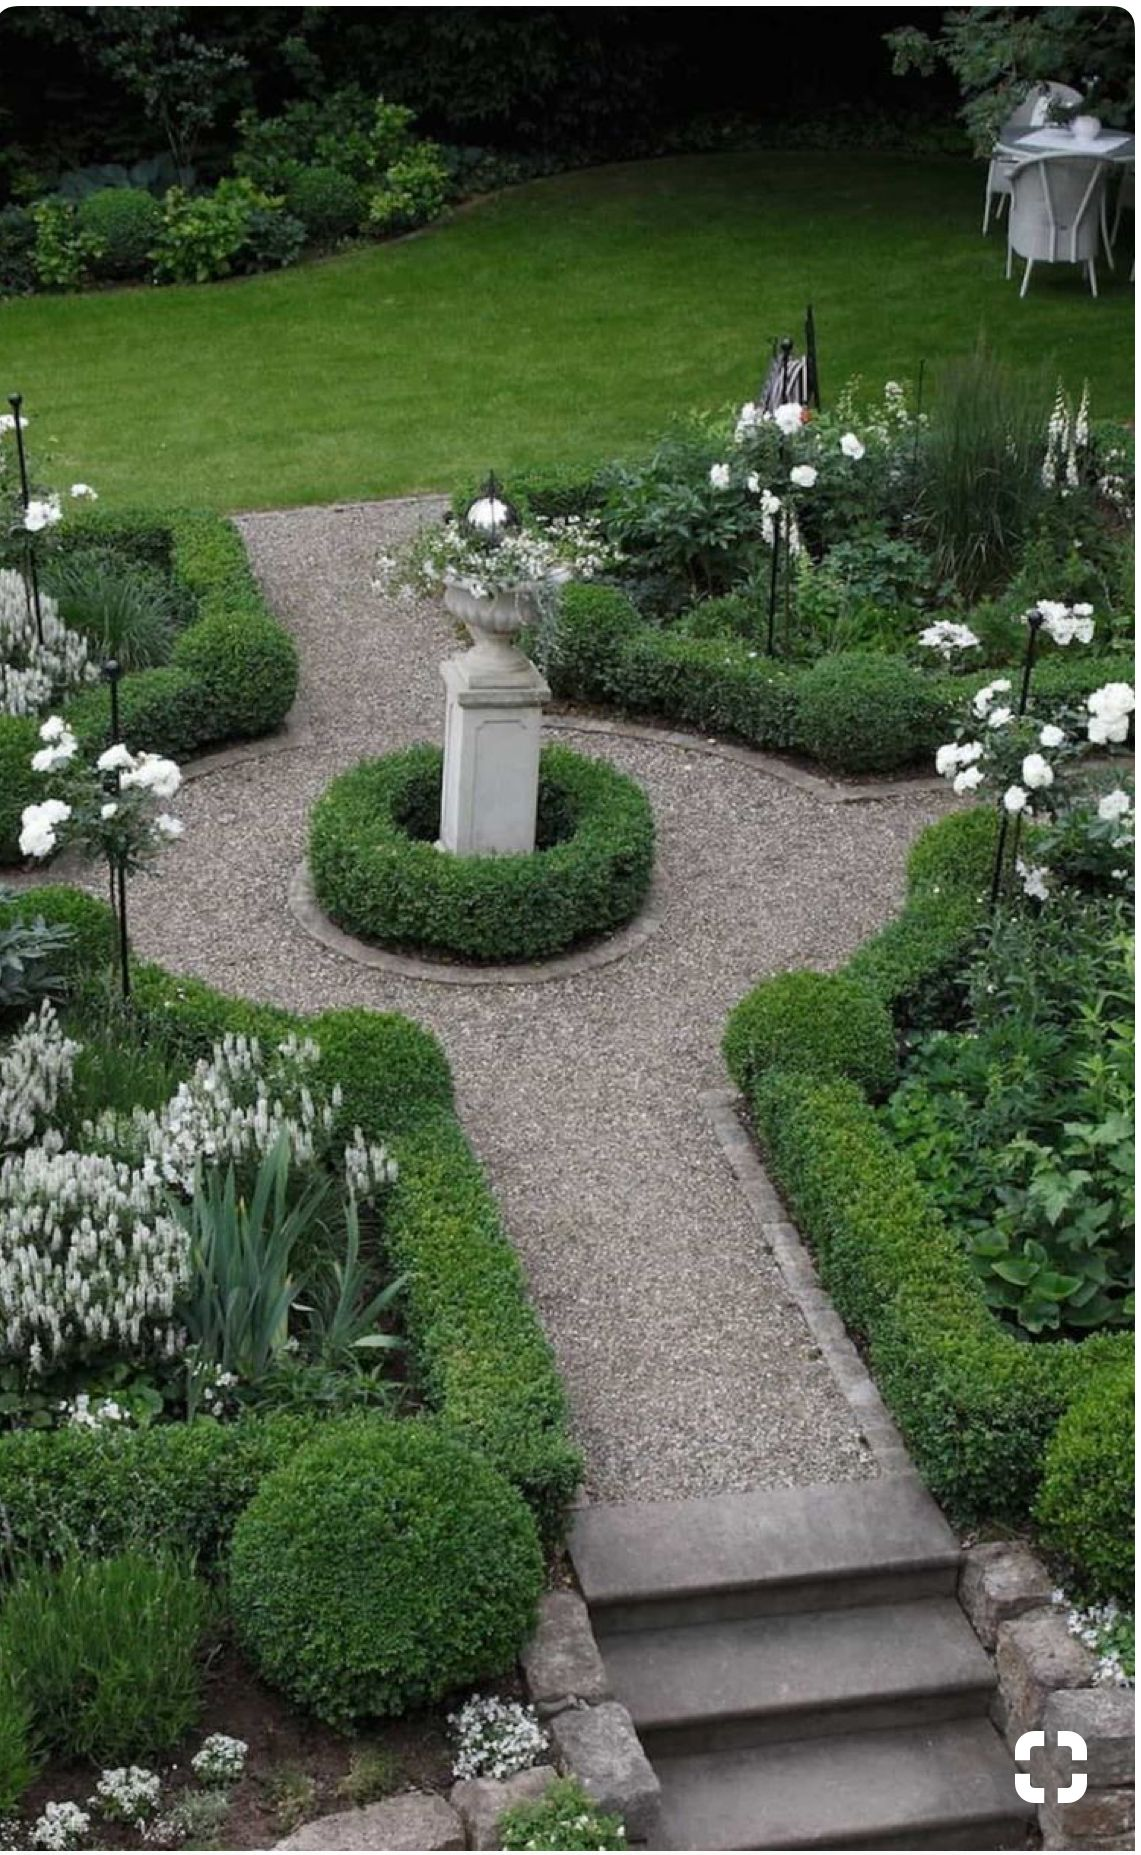 Pin by Shash on Landscaping | Pinterest | Gardens, Garden ideas and ...